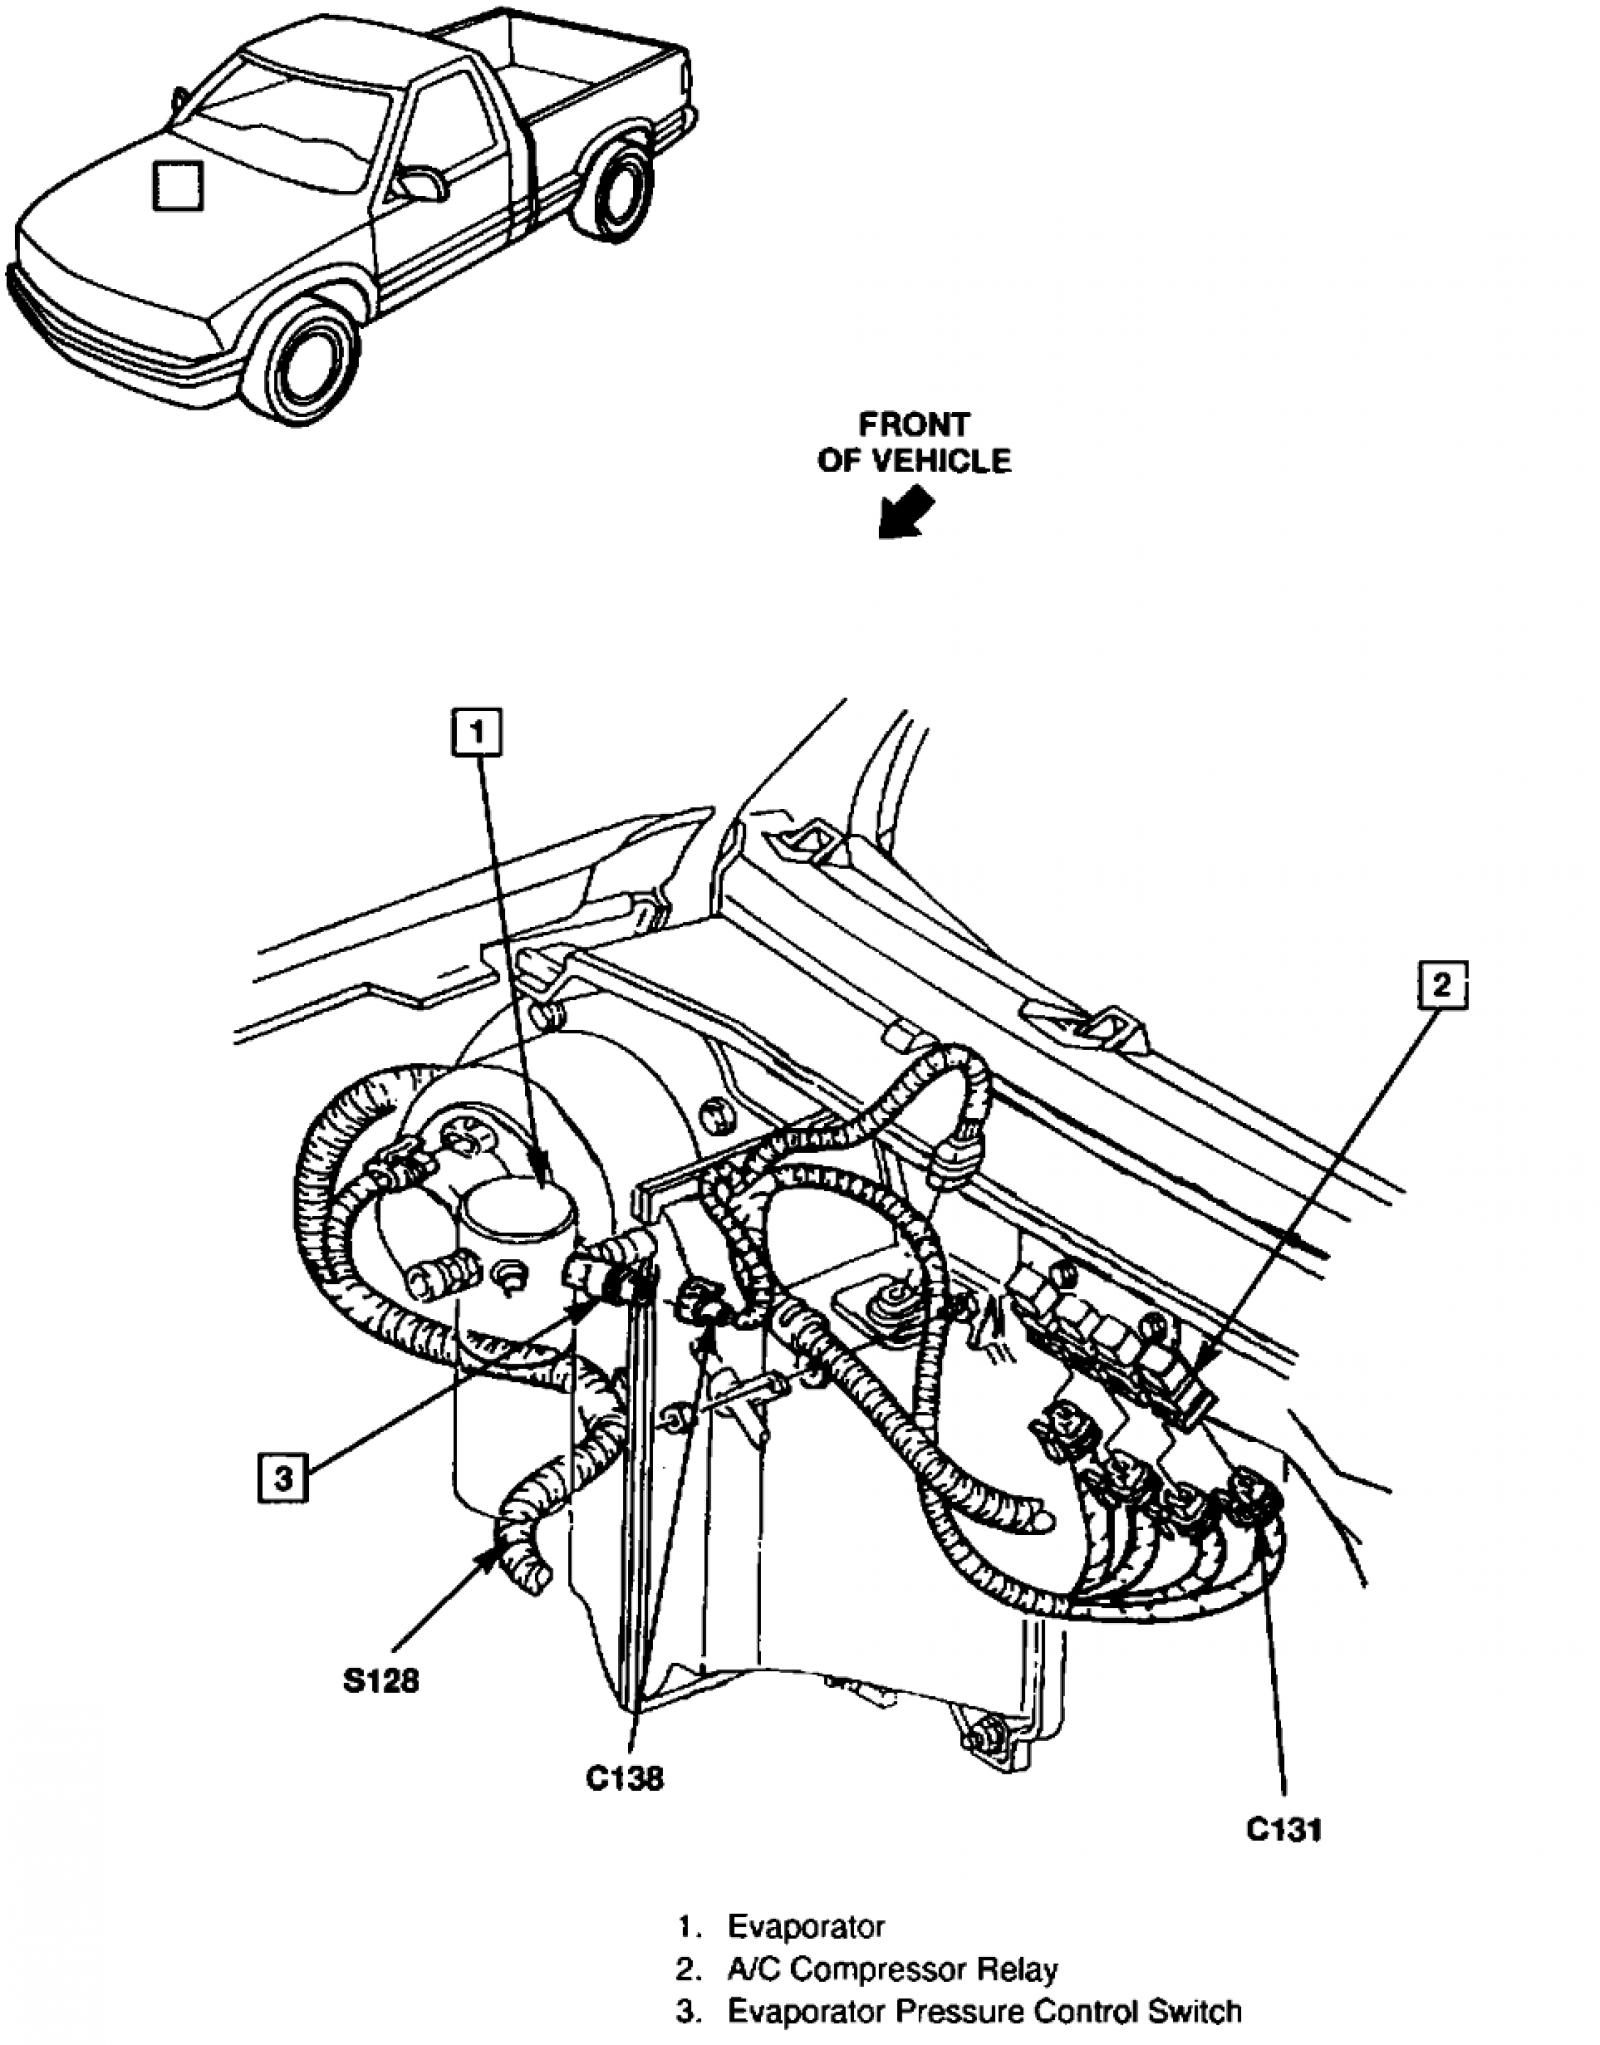 1994 gmc sonoma information and photos zombiedrive 94 toyota camry wiring diagram 800 1024 1280 1600